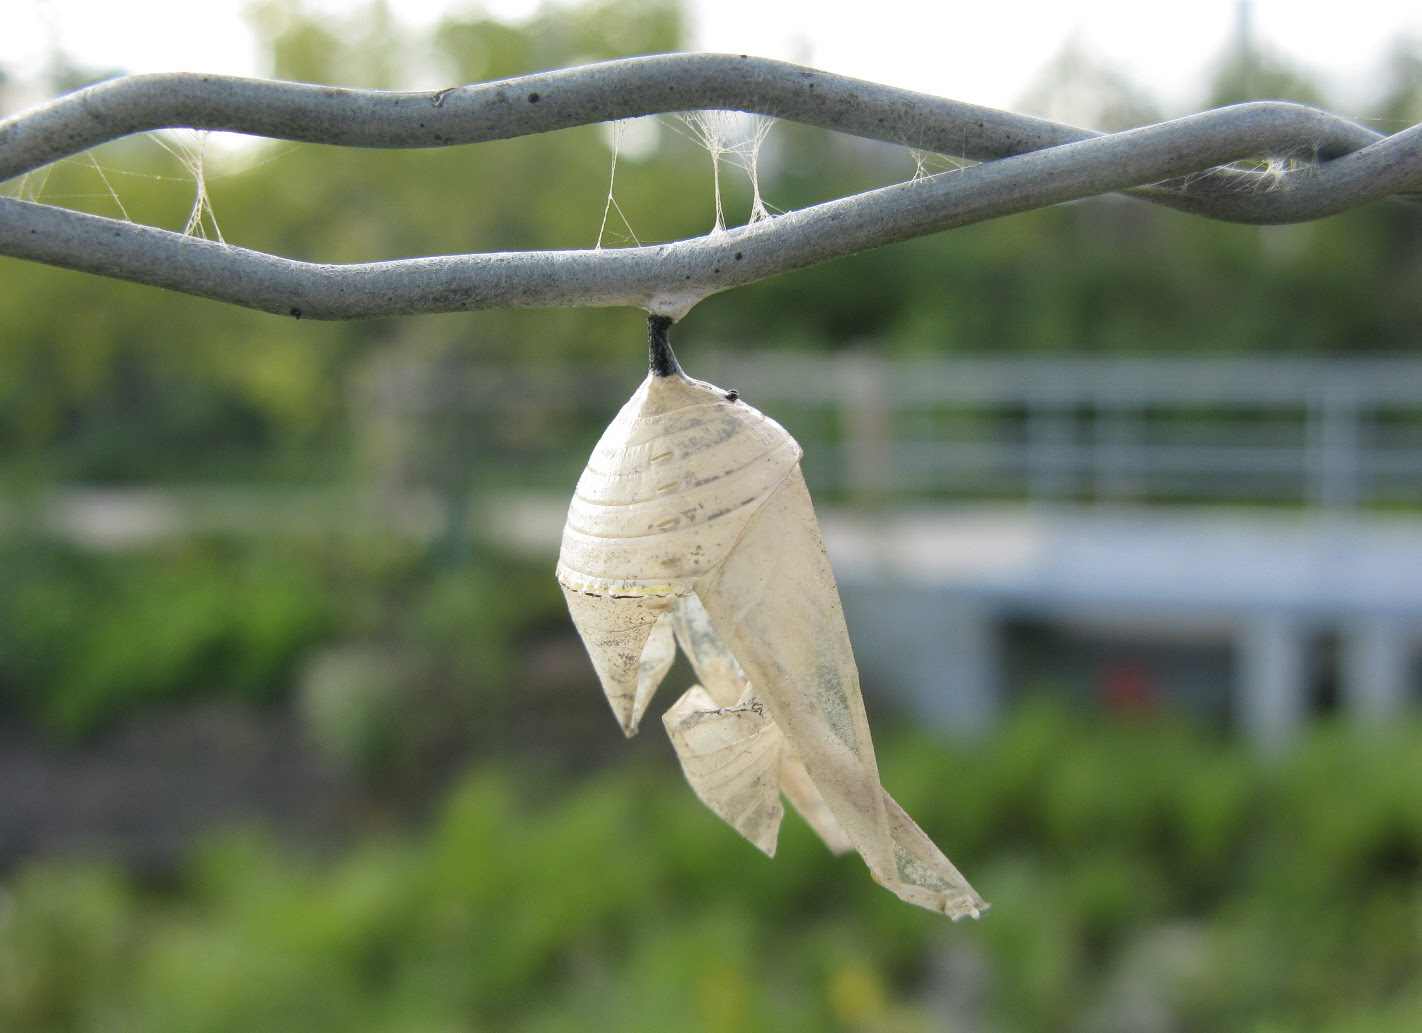 Yellow Bear Caterpillar Cocoon The remains of a pupa,